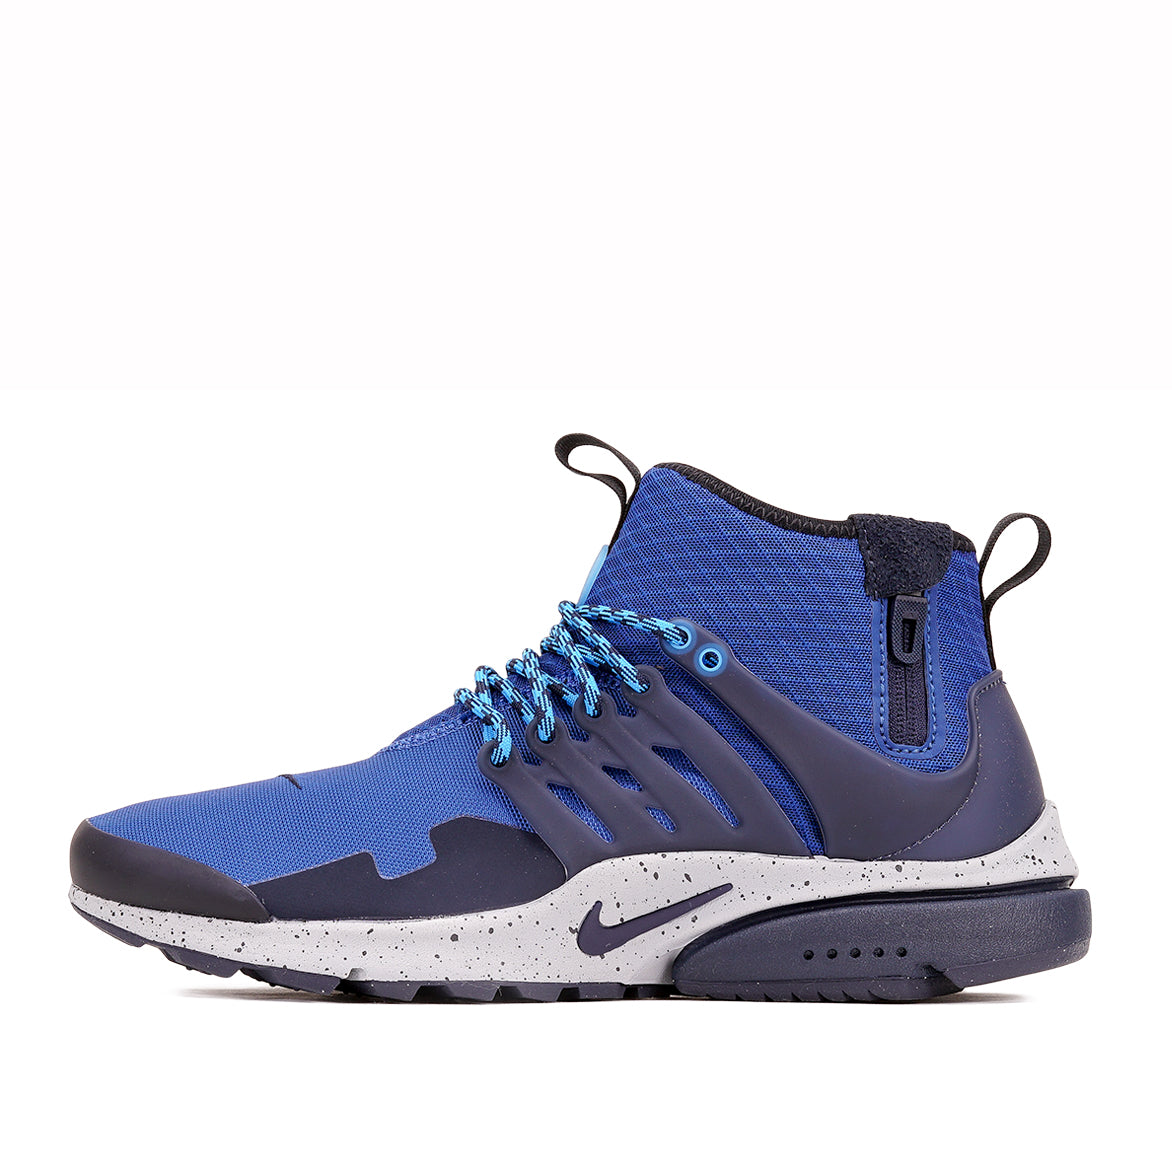 huge selection of 4419a 56543 AIR PRESTO MID UTILITY - GYM BLUE | City Blue